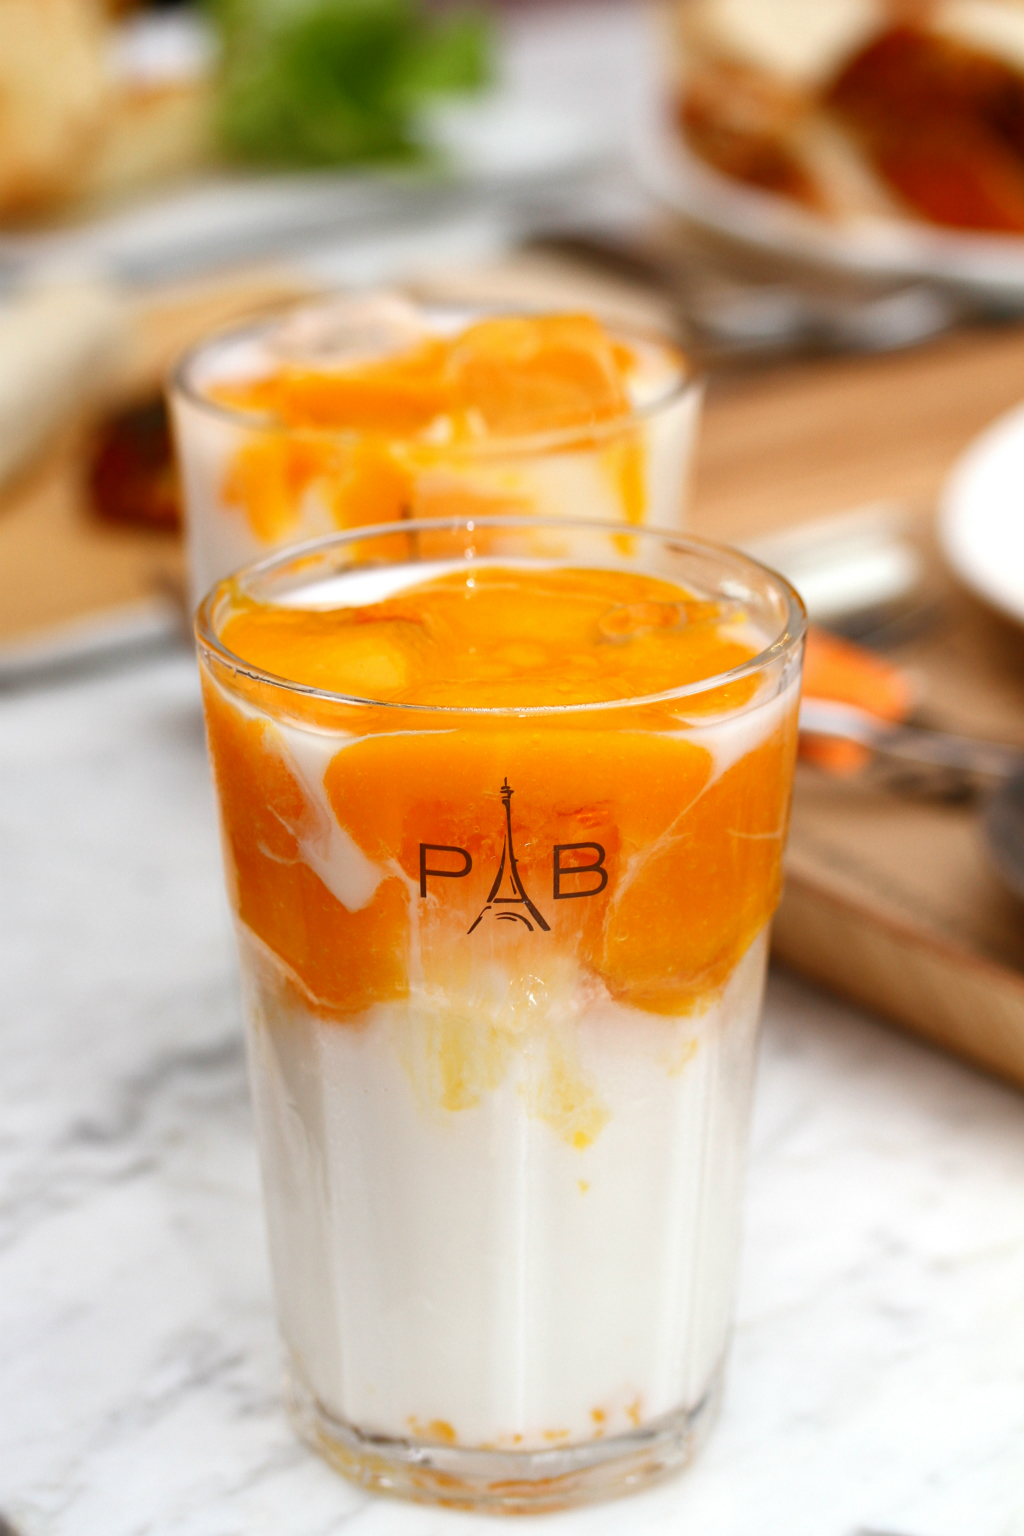 Paris Baguette Cafe's Mango Latte